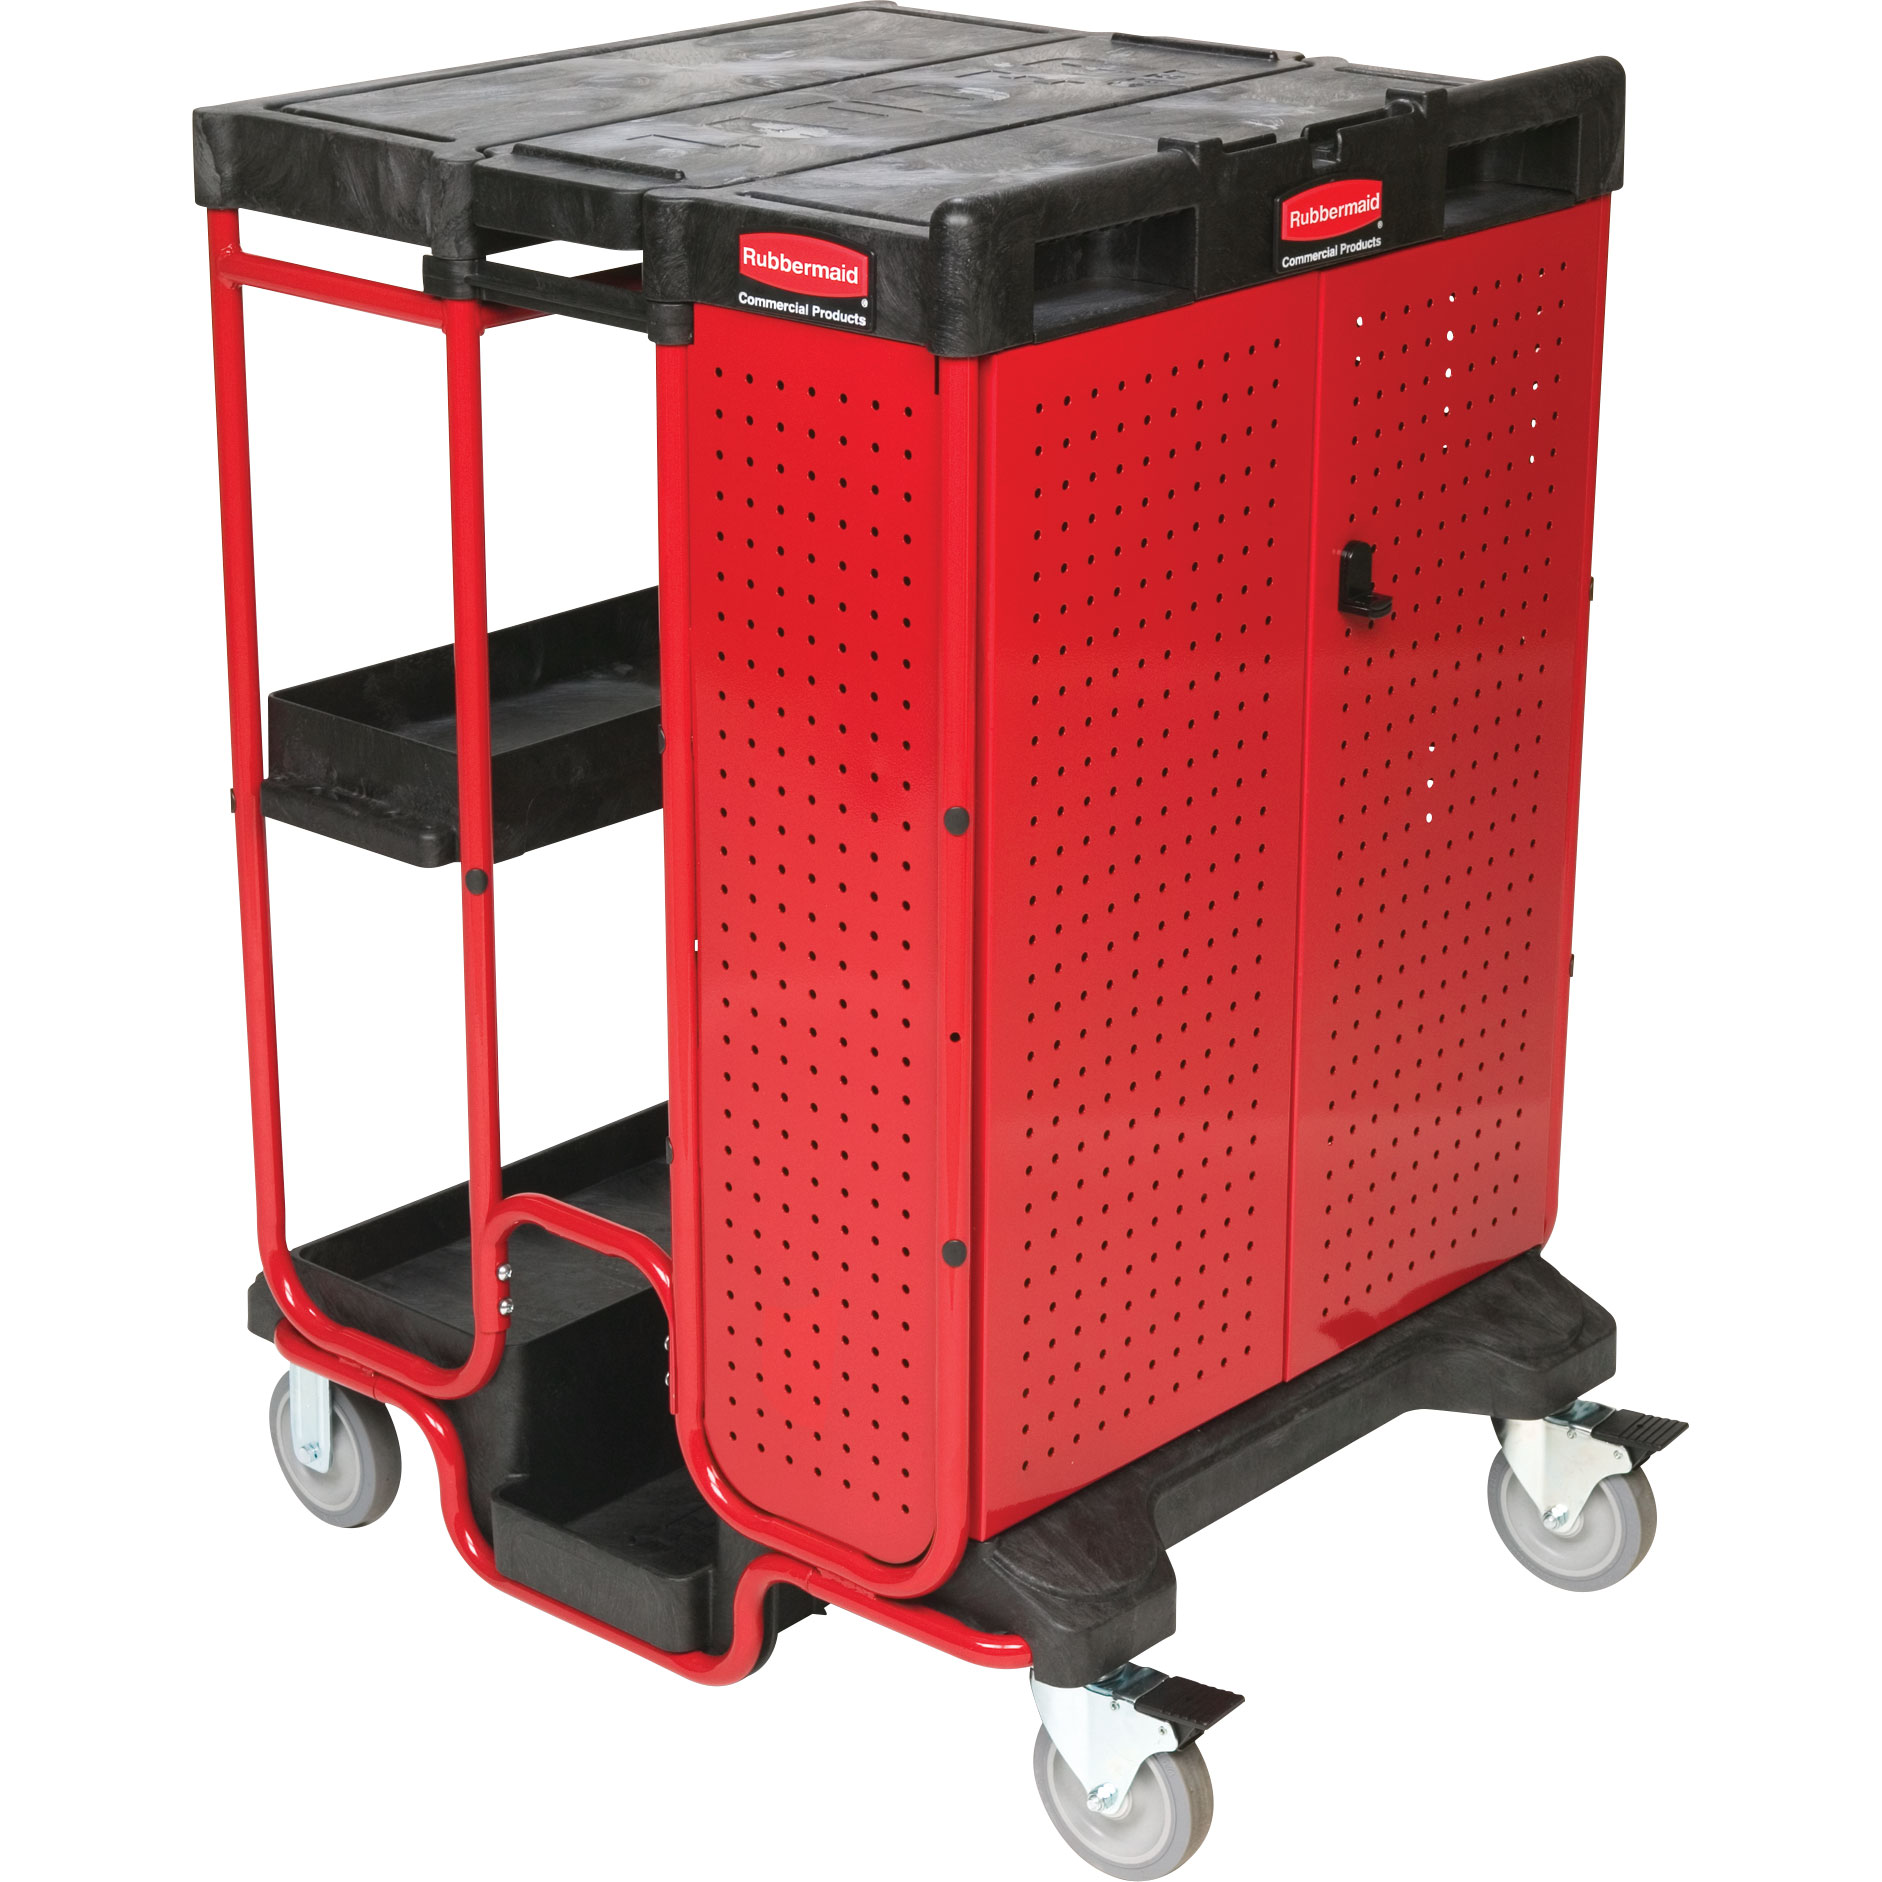 44 Gallon BRUTE Utility Container p 586 likewise Glutton Recycling Container Rectangular 56 Gal Blue p 478 moreover Convertible Platform Truck 1000 Lb Cap p 1738 besides BRUTE Square Dolly For 3526 3536 Containers p 700 moreover Ladder Cart With Cabi  p 2557. on rubbermaid outdoor trash receptacles